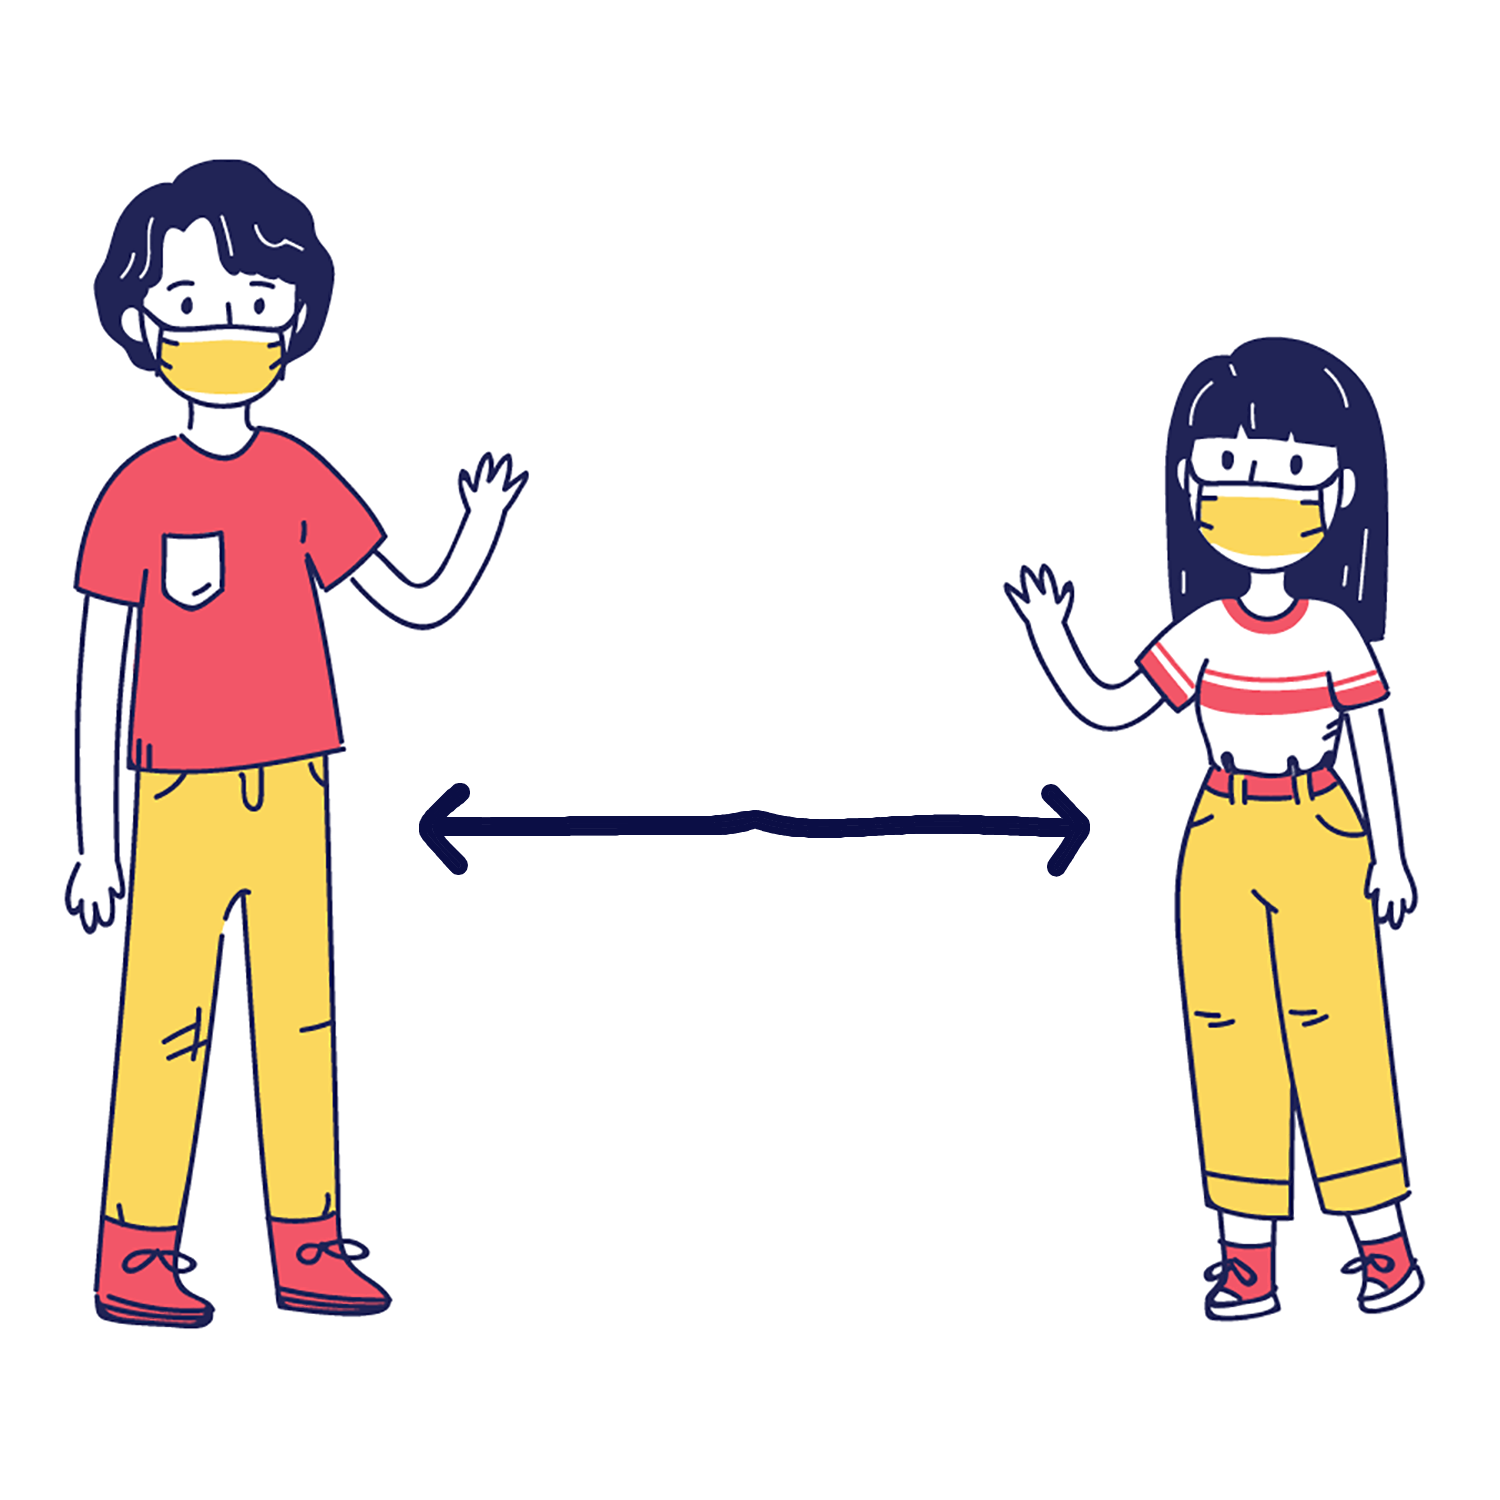 Illustration of a boy and girl social distancing with an arrow between them